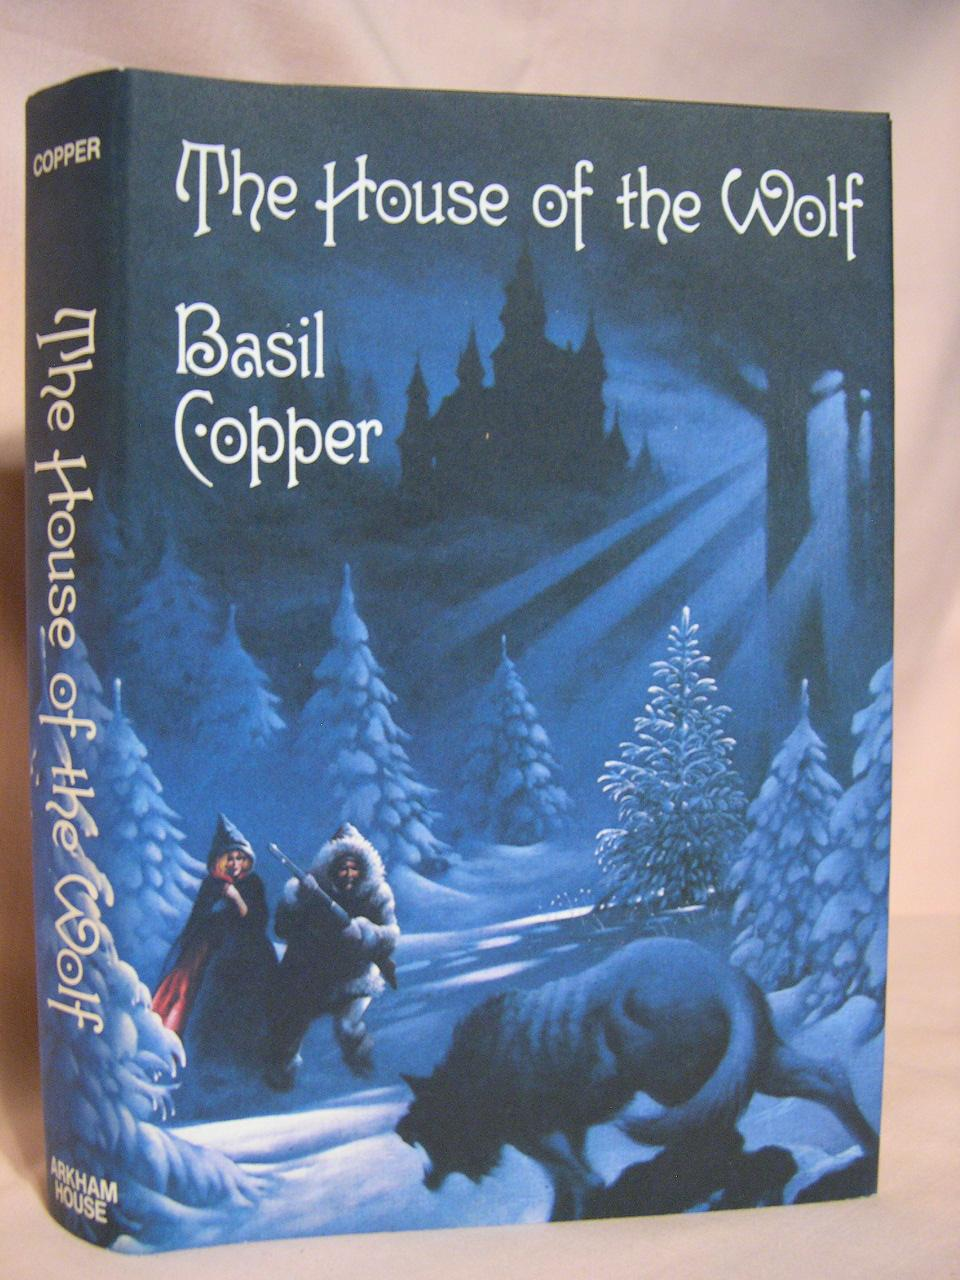 THE HOUSE OF THE WOLF - Copper, Basil